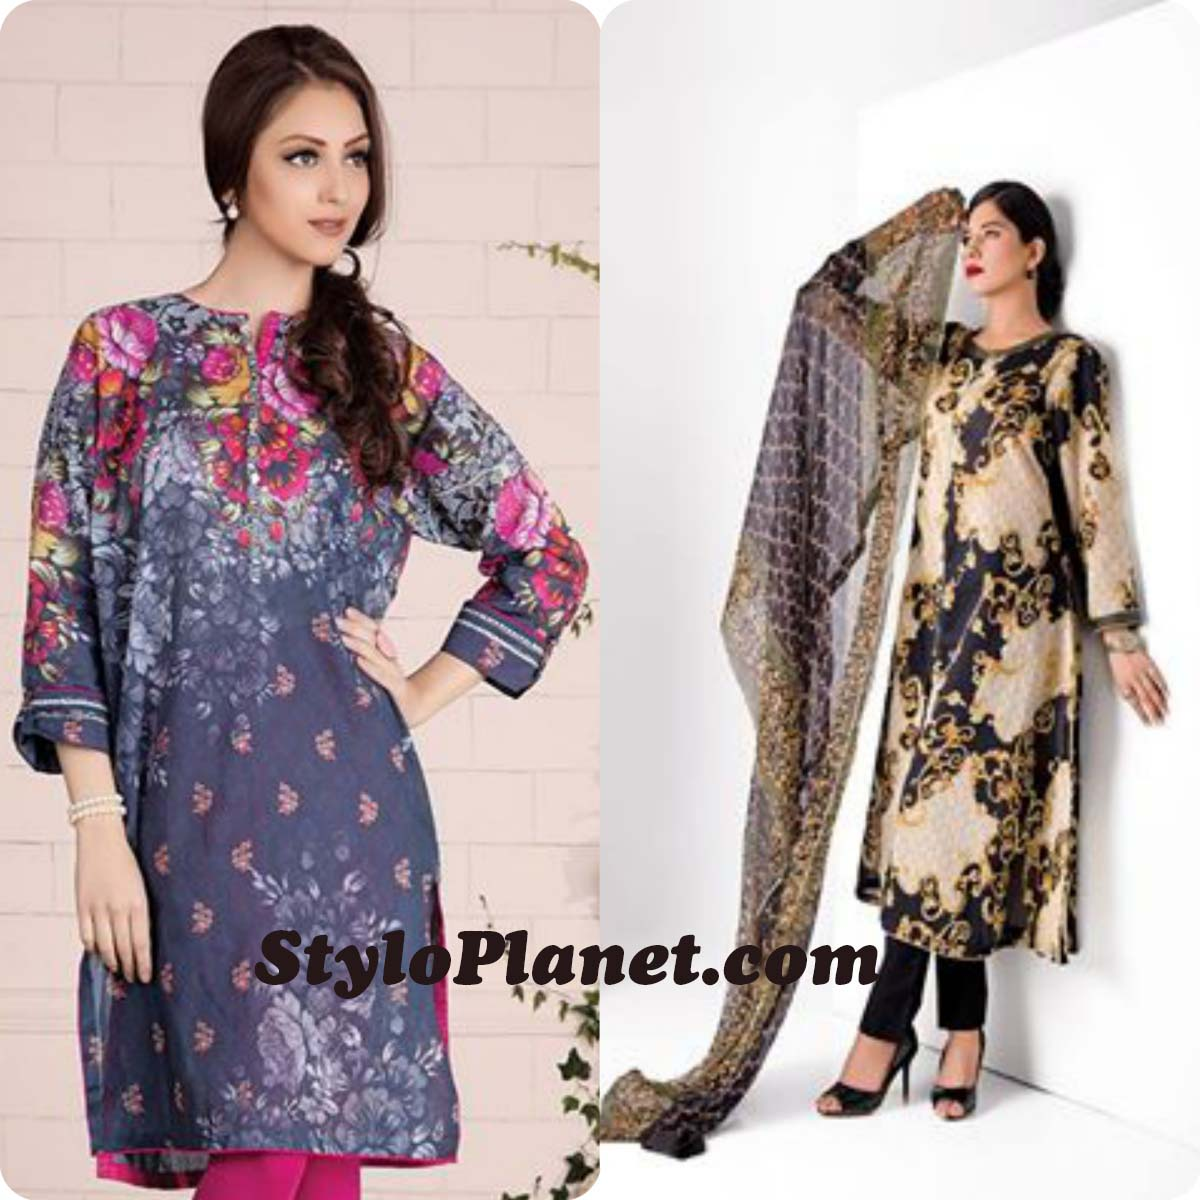 Kayseria New Eid-Ul-Adha Collection for Women 2016-2017 (12)